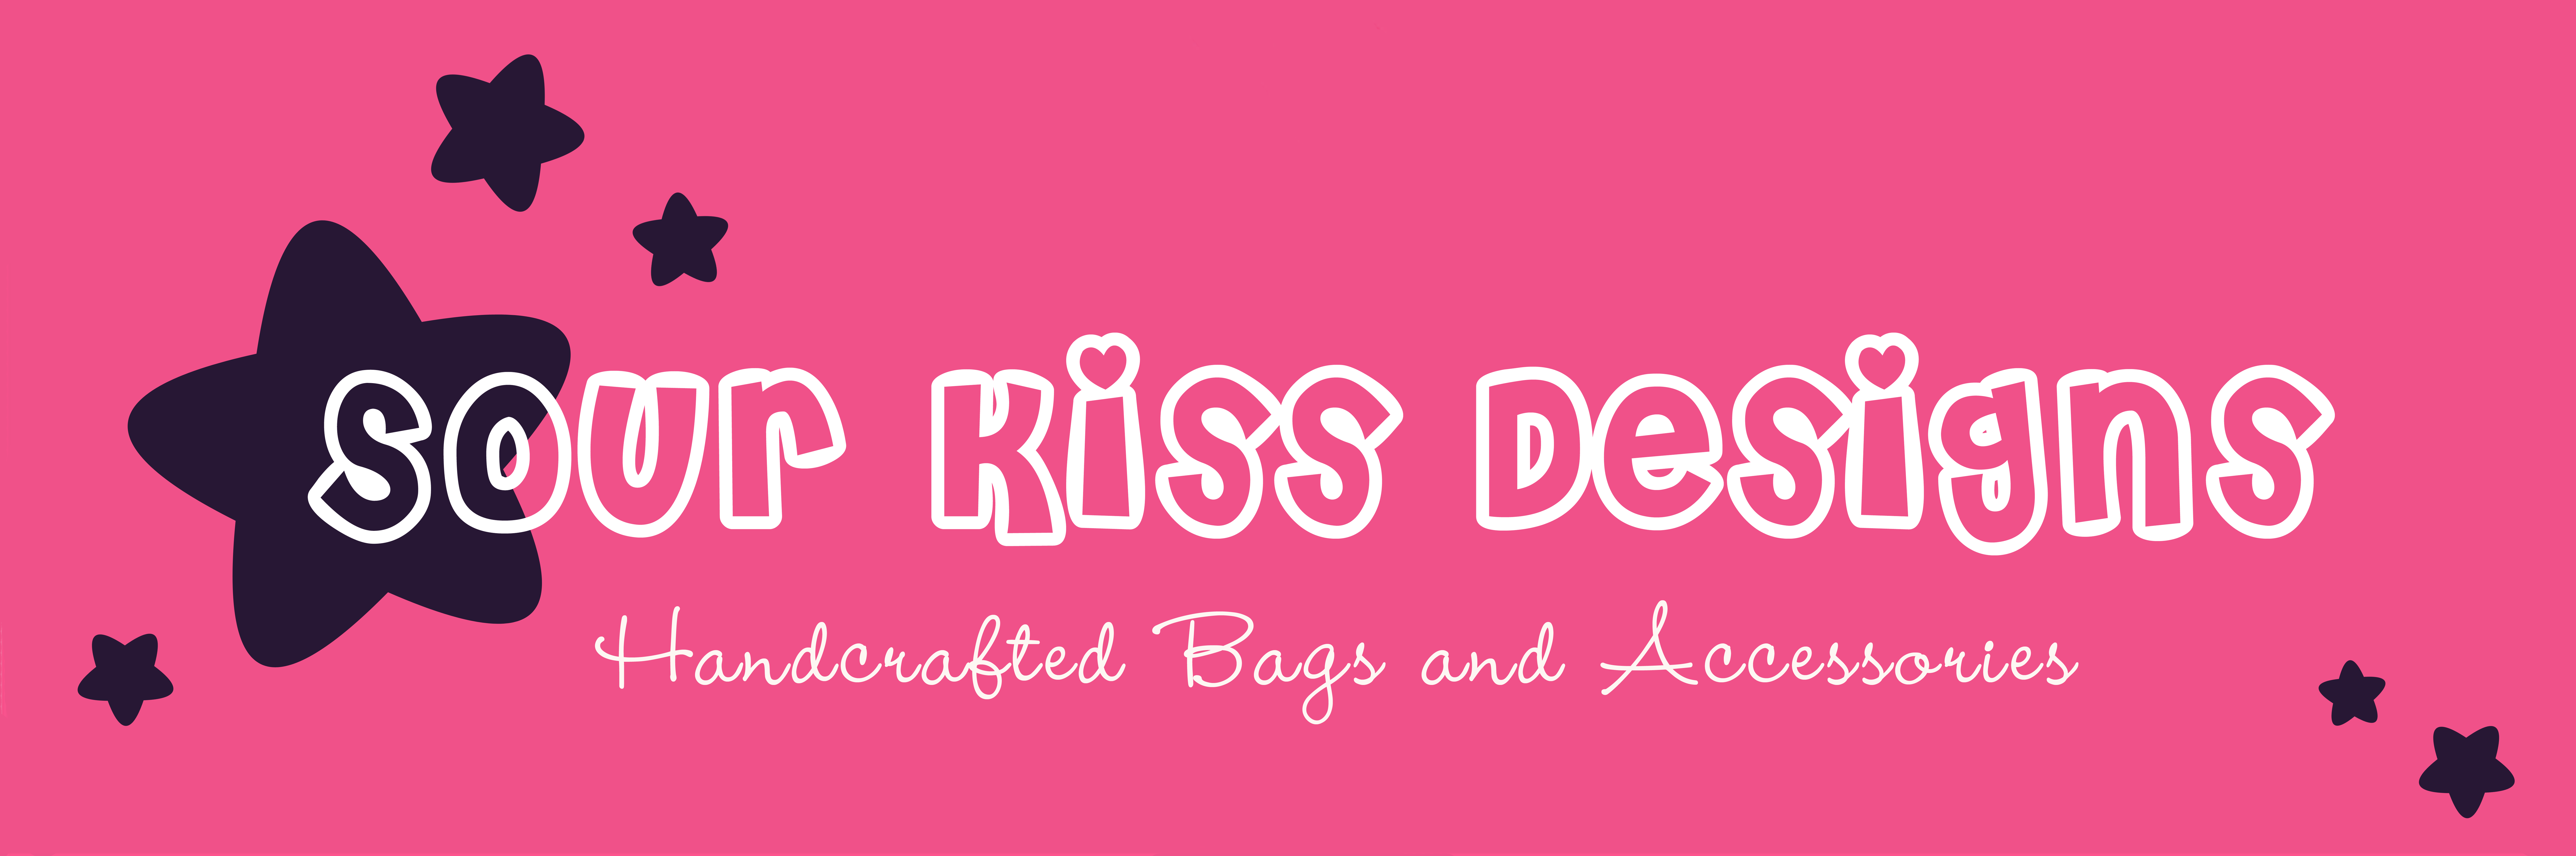 Sour Kiss Designs